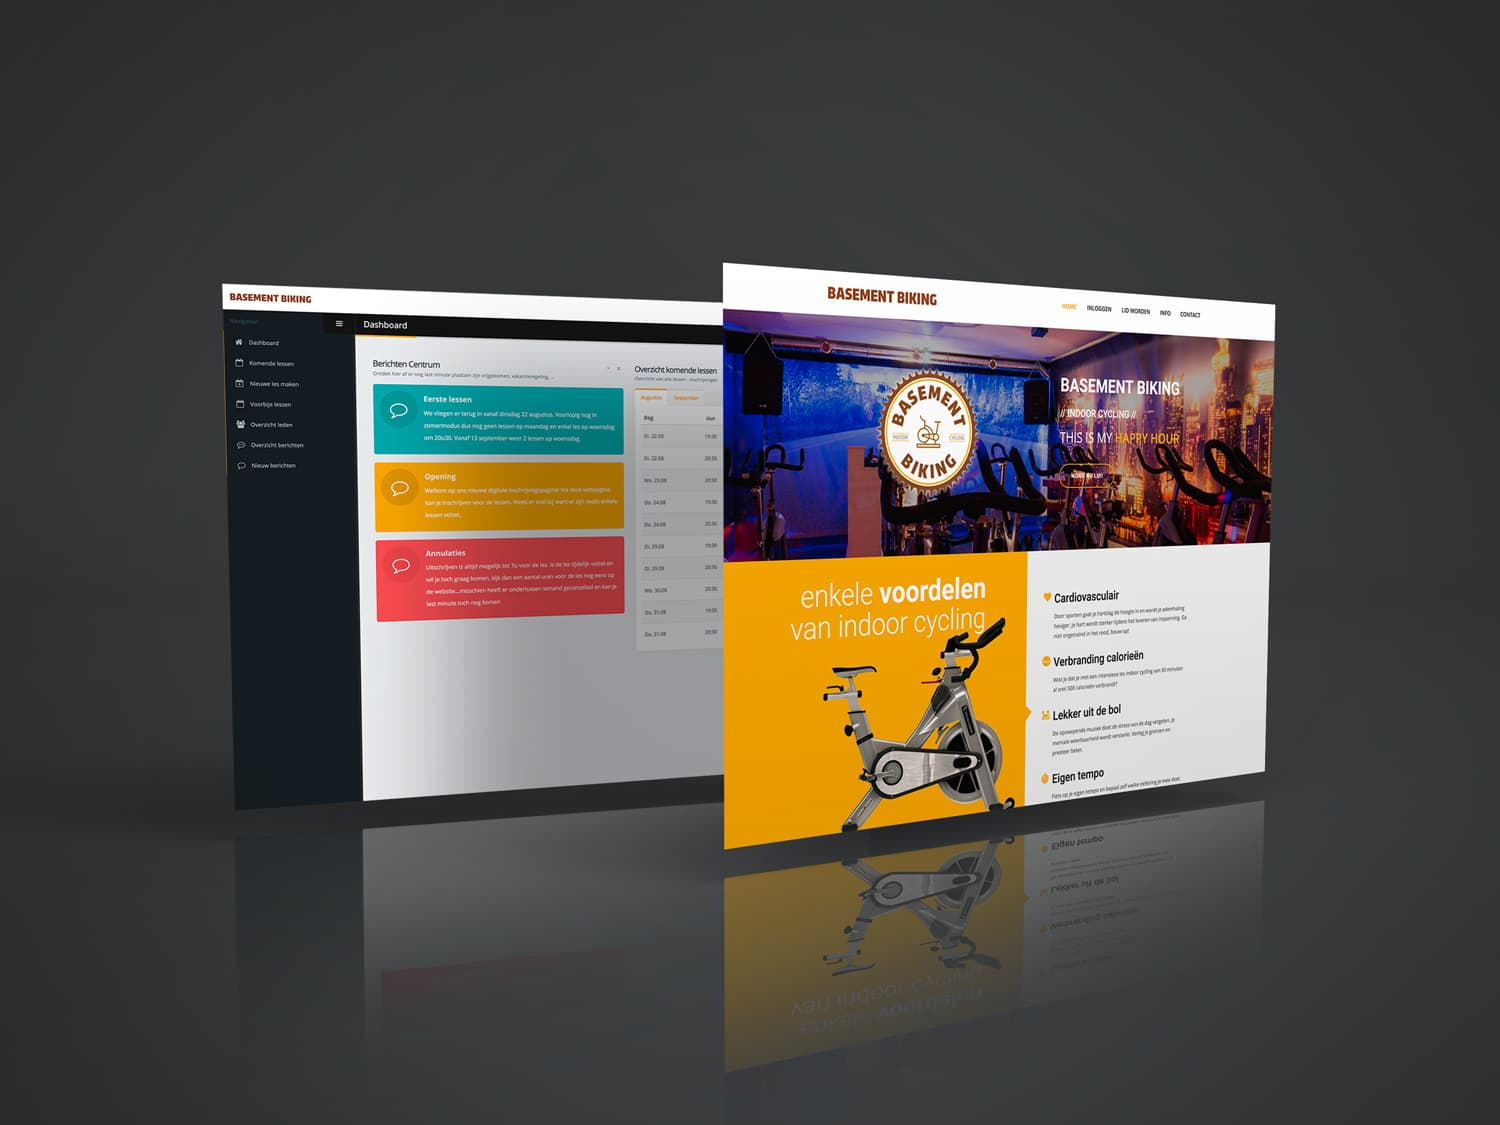 Design15 - webdesign op maat - basement biking